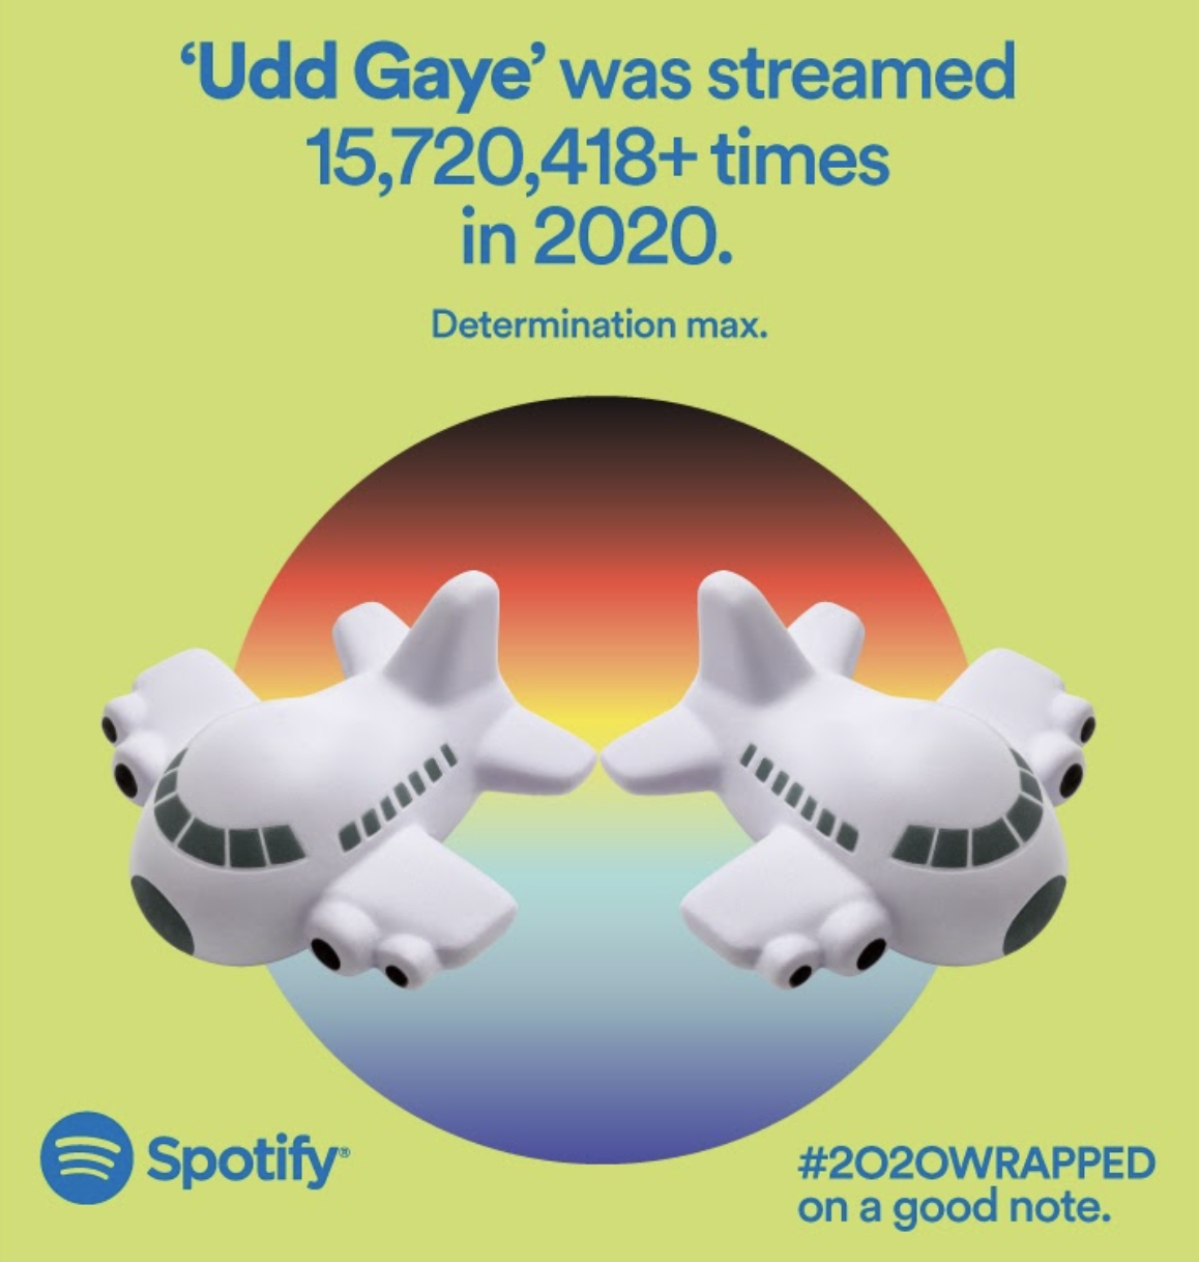 Spotify announces Wrapped 2020 - a look back on the year's music trends